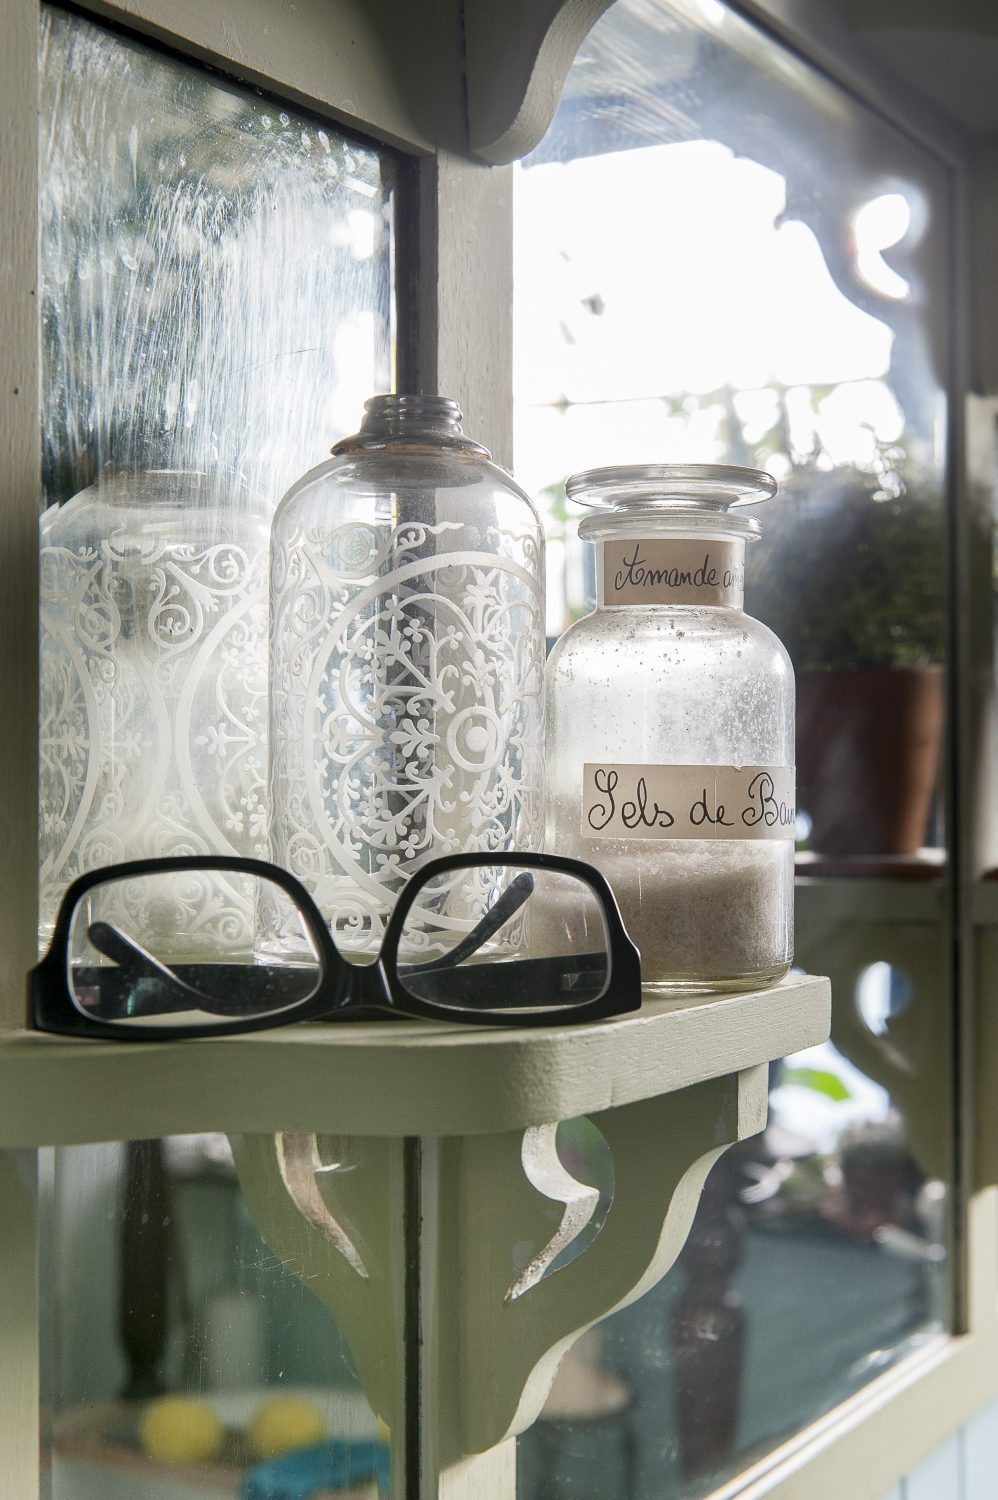 Decorative apothecary bottles line the shelves surrounding the bathroom mirror